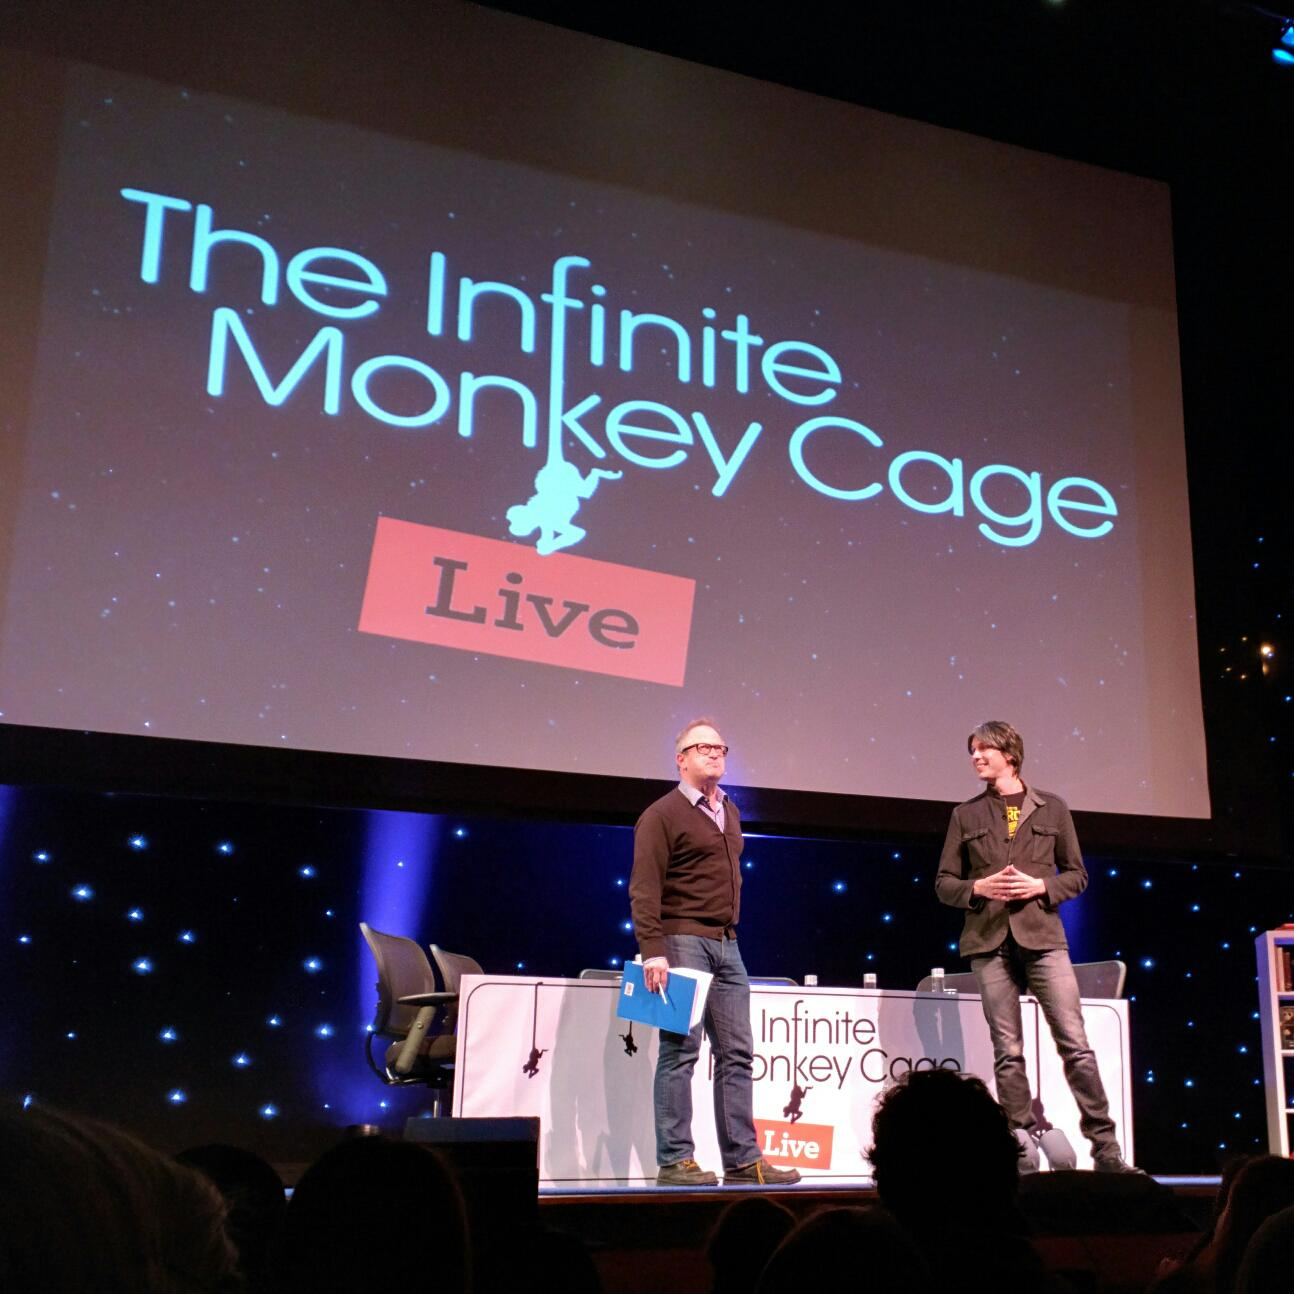 RT @joelwerner: .@robinince and @ProfBrianCox holding court at The Infinite Monkey Cage, live in NYC. http://t.co/pug67BSxha